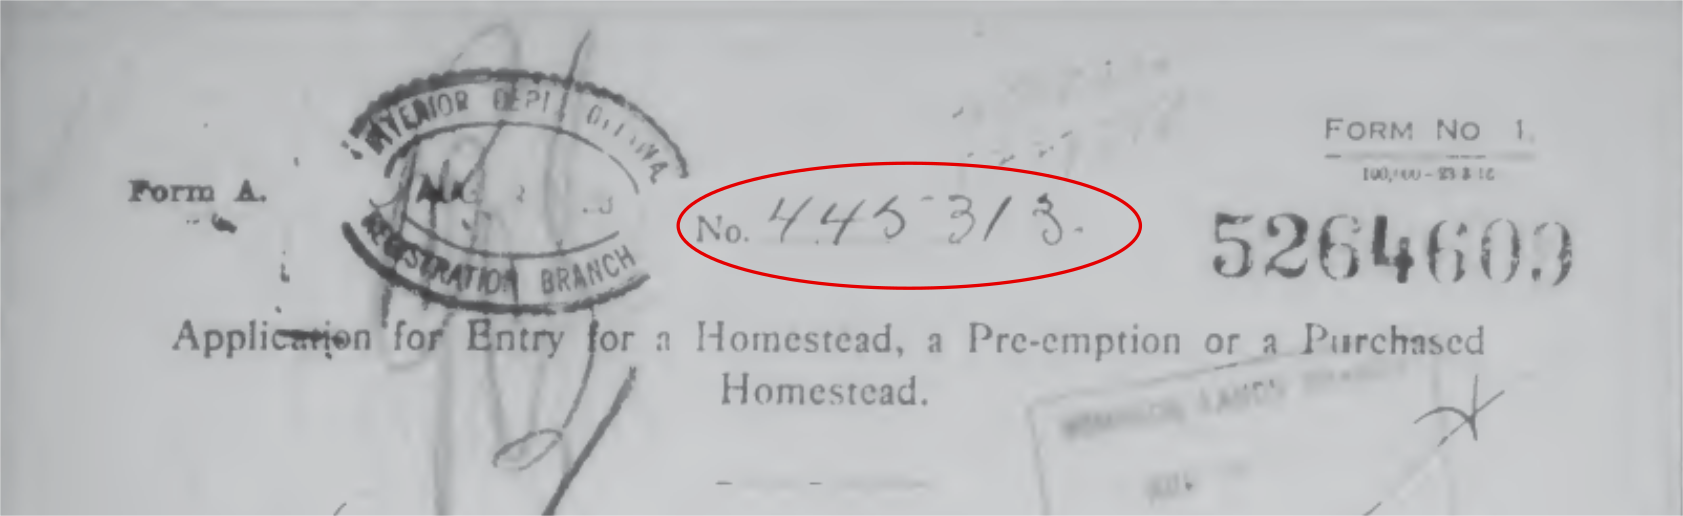 appplication for homestead